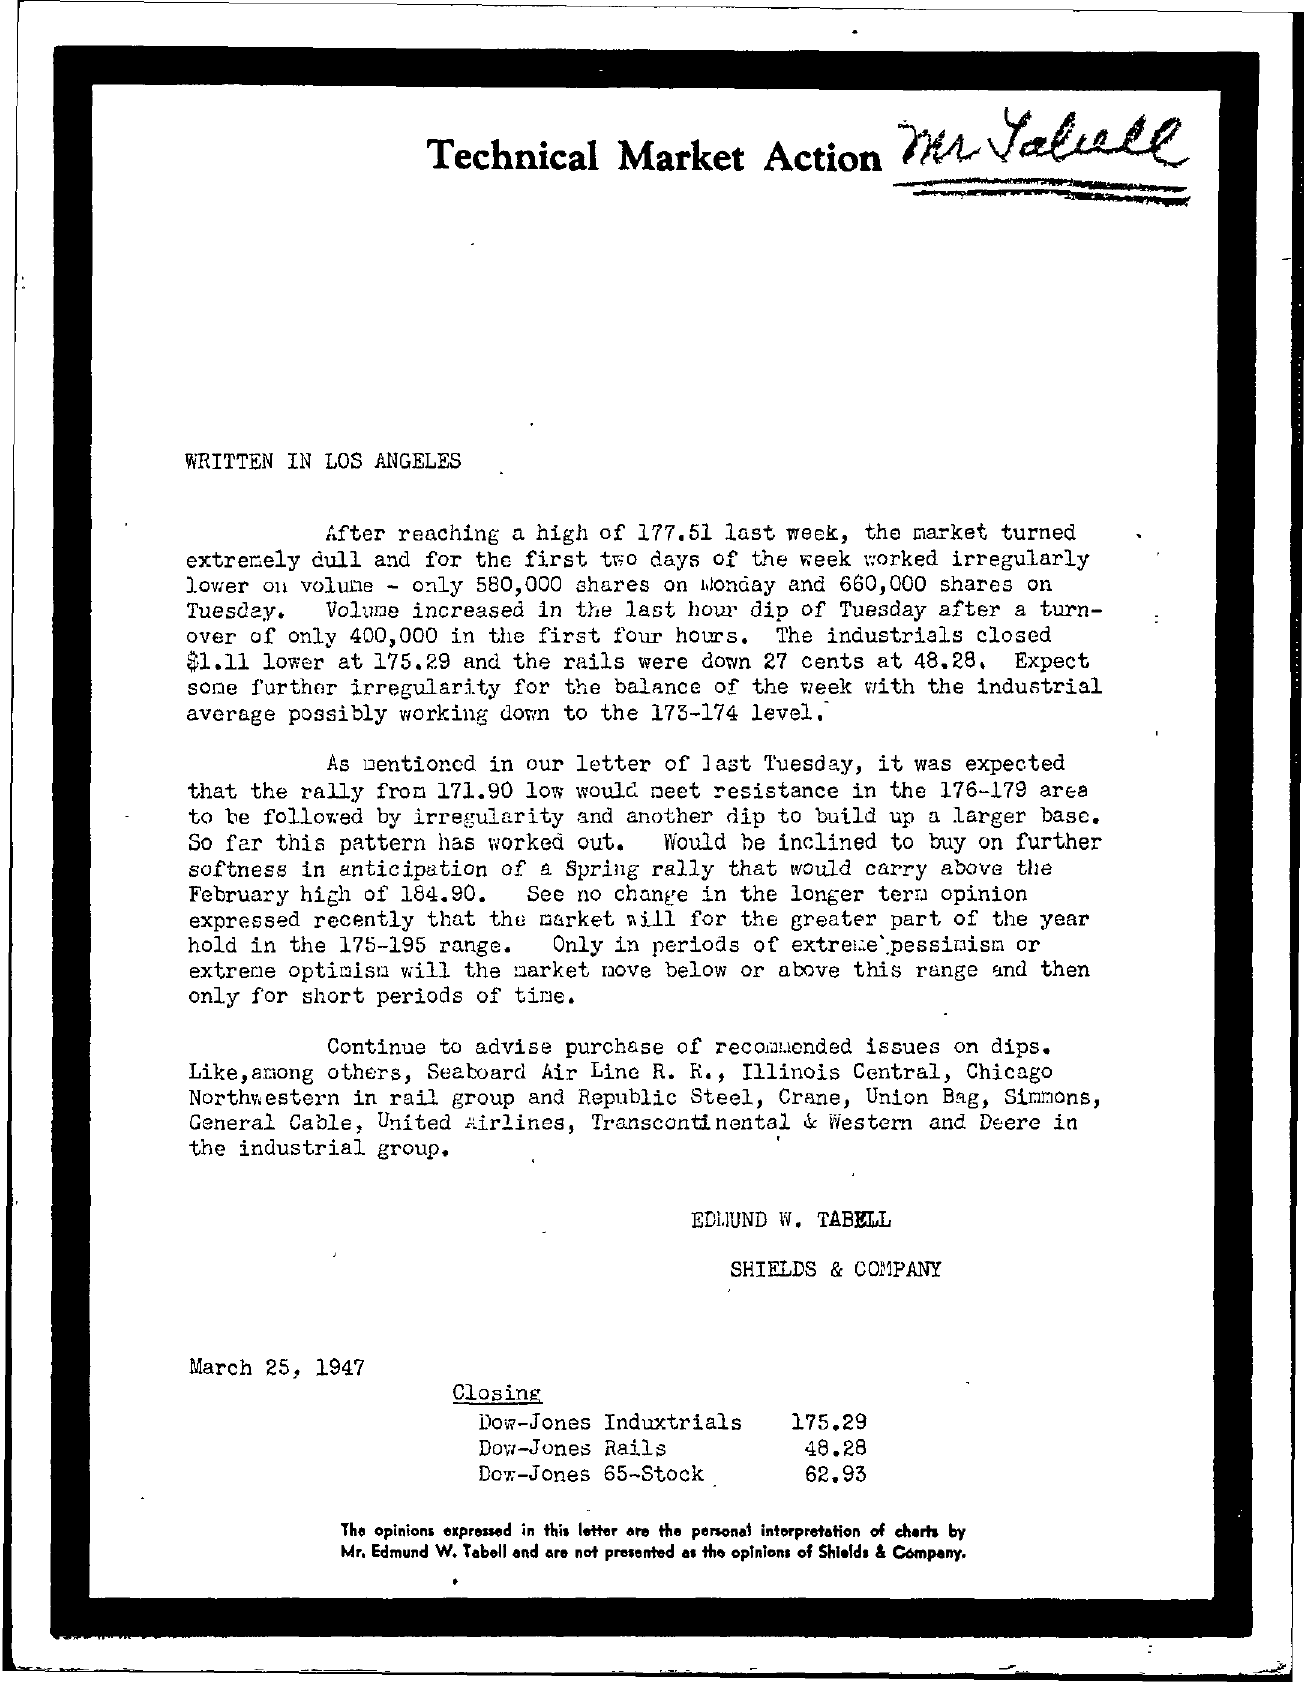 Tabell's Market Letter - March 25, 1947